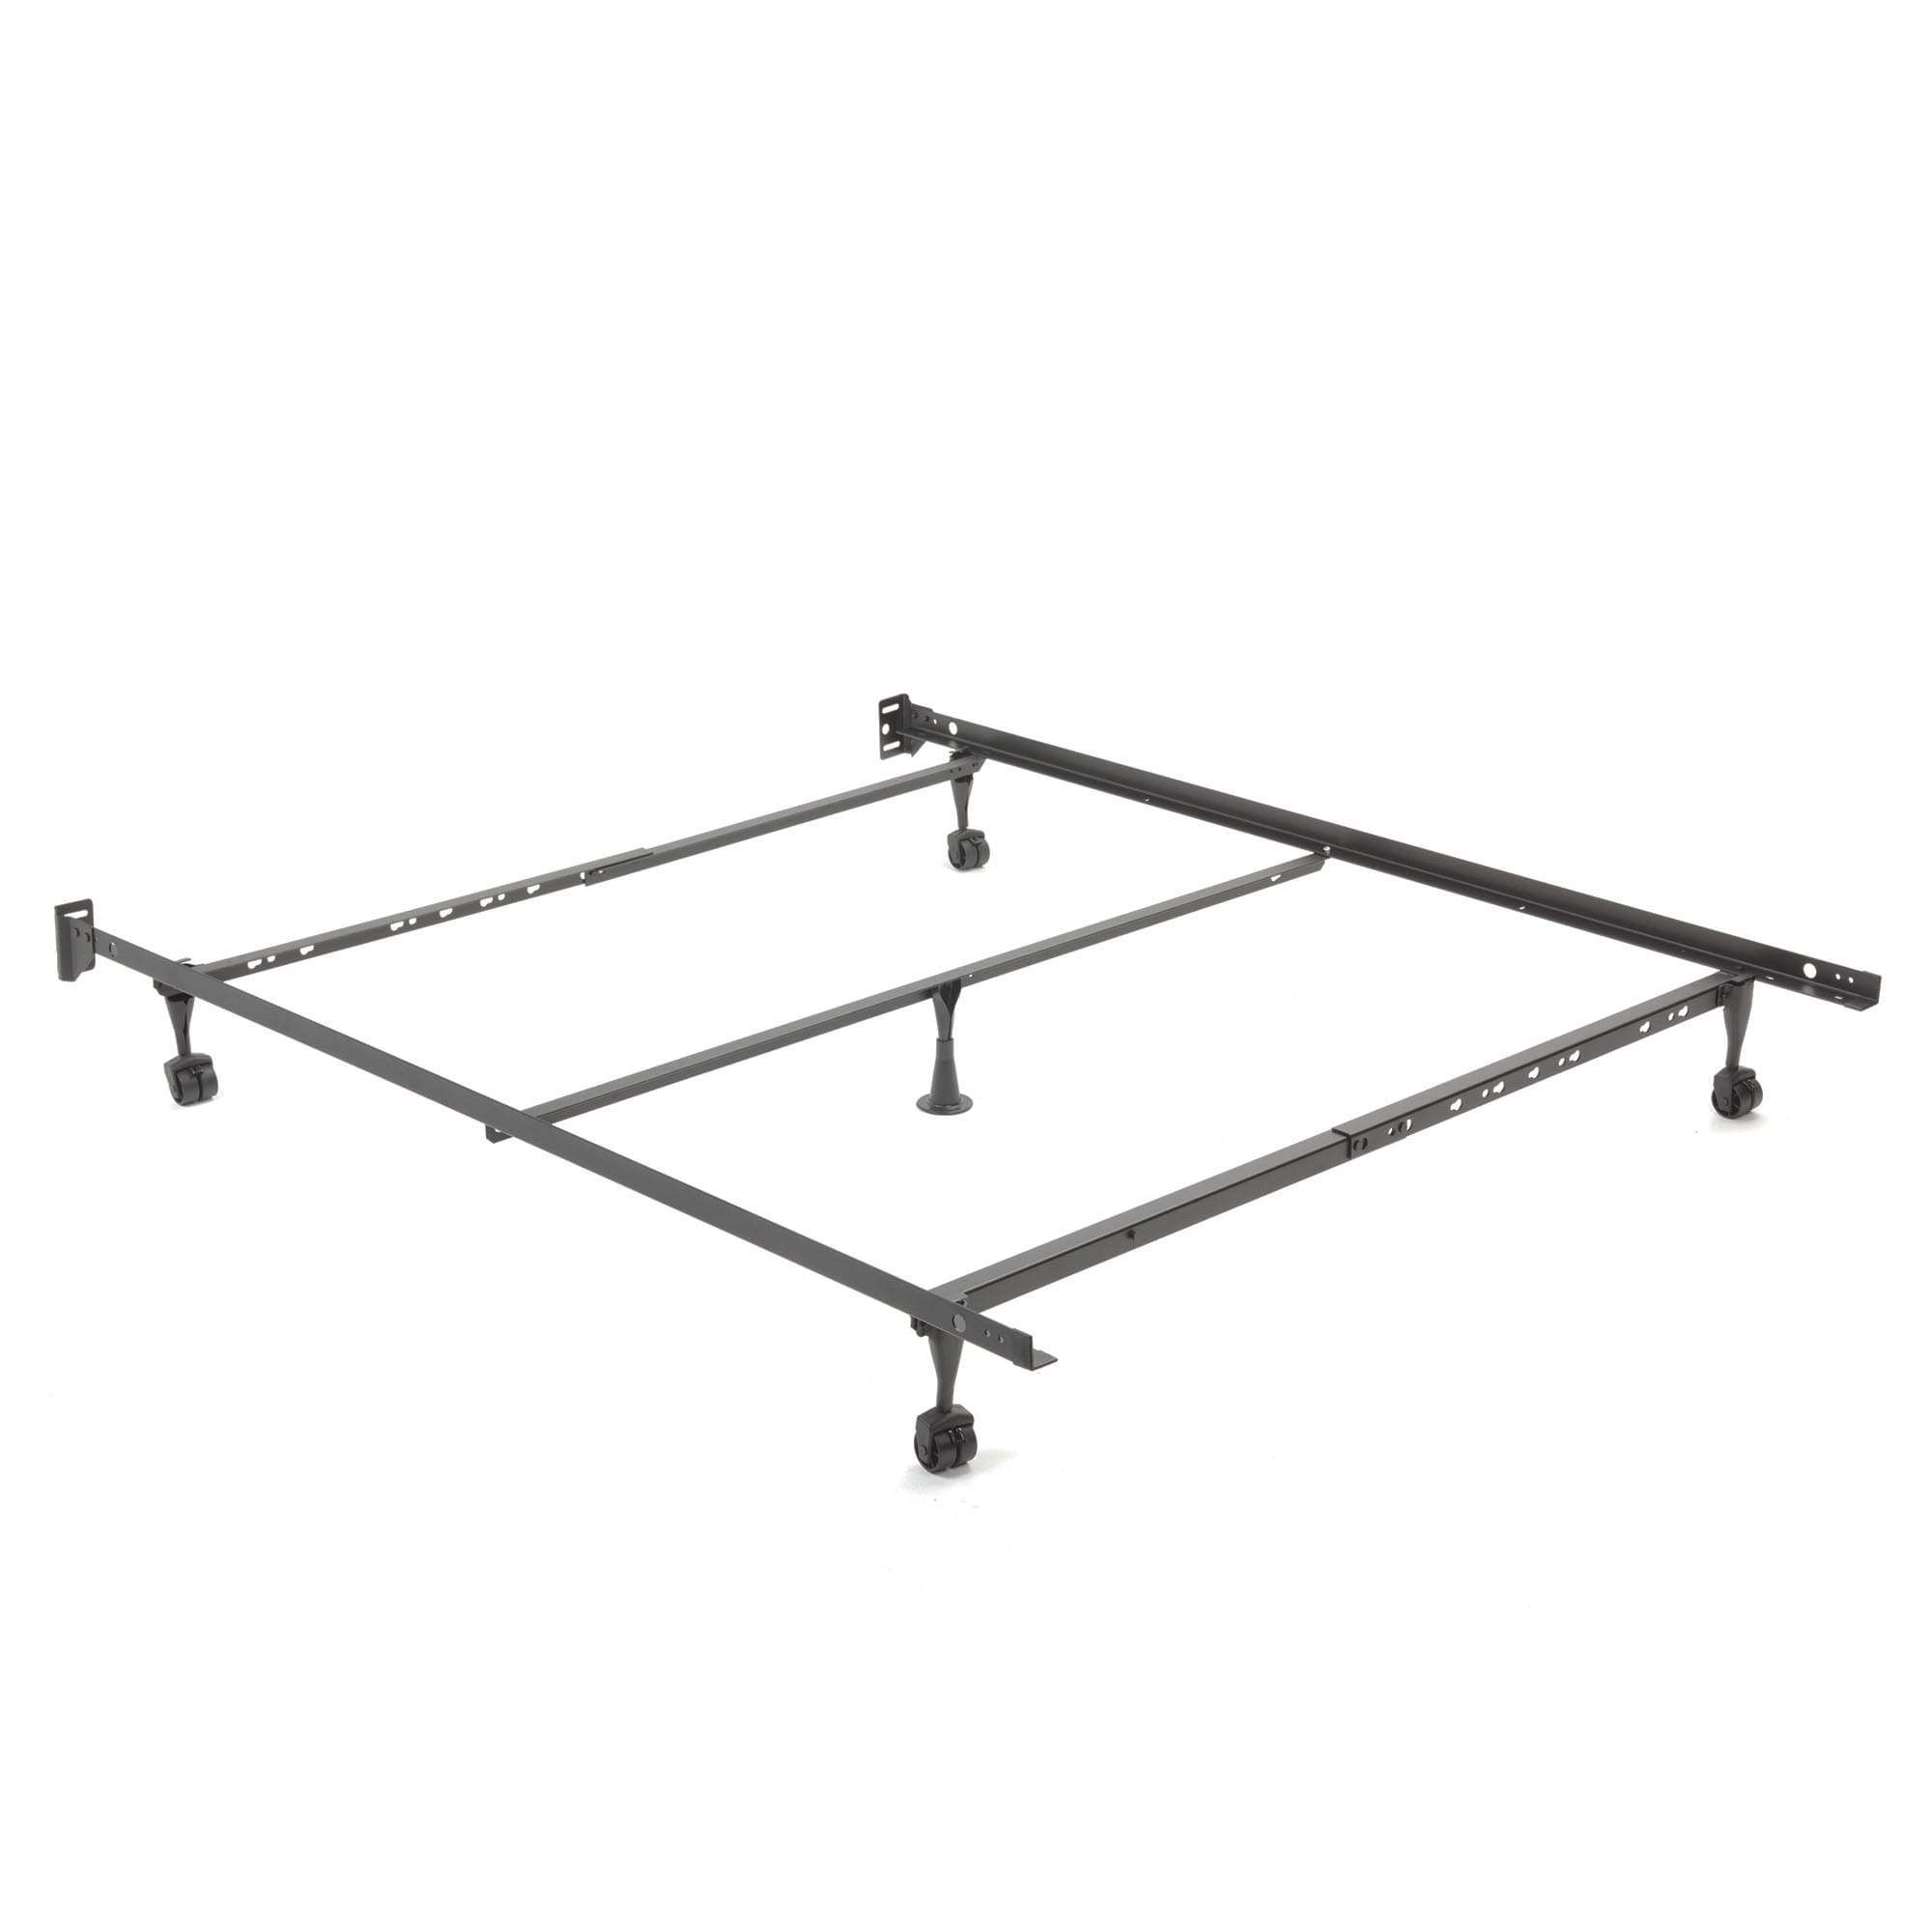 restmore adjustable q45r cross support bed frame w fixed headboard